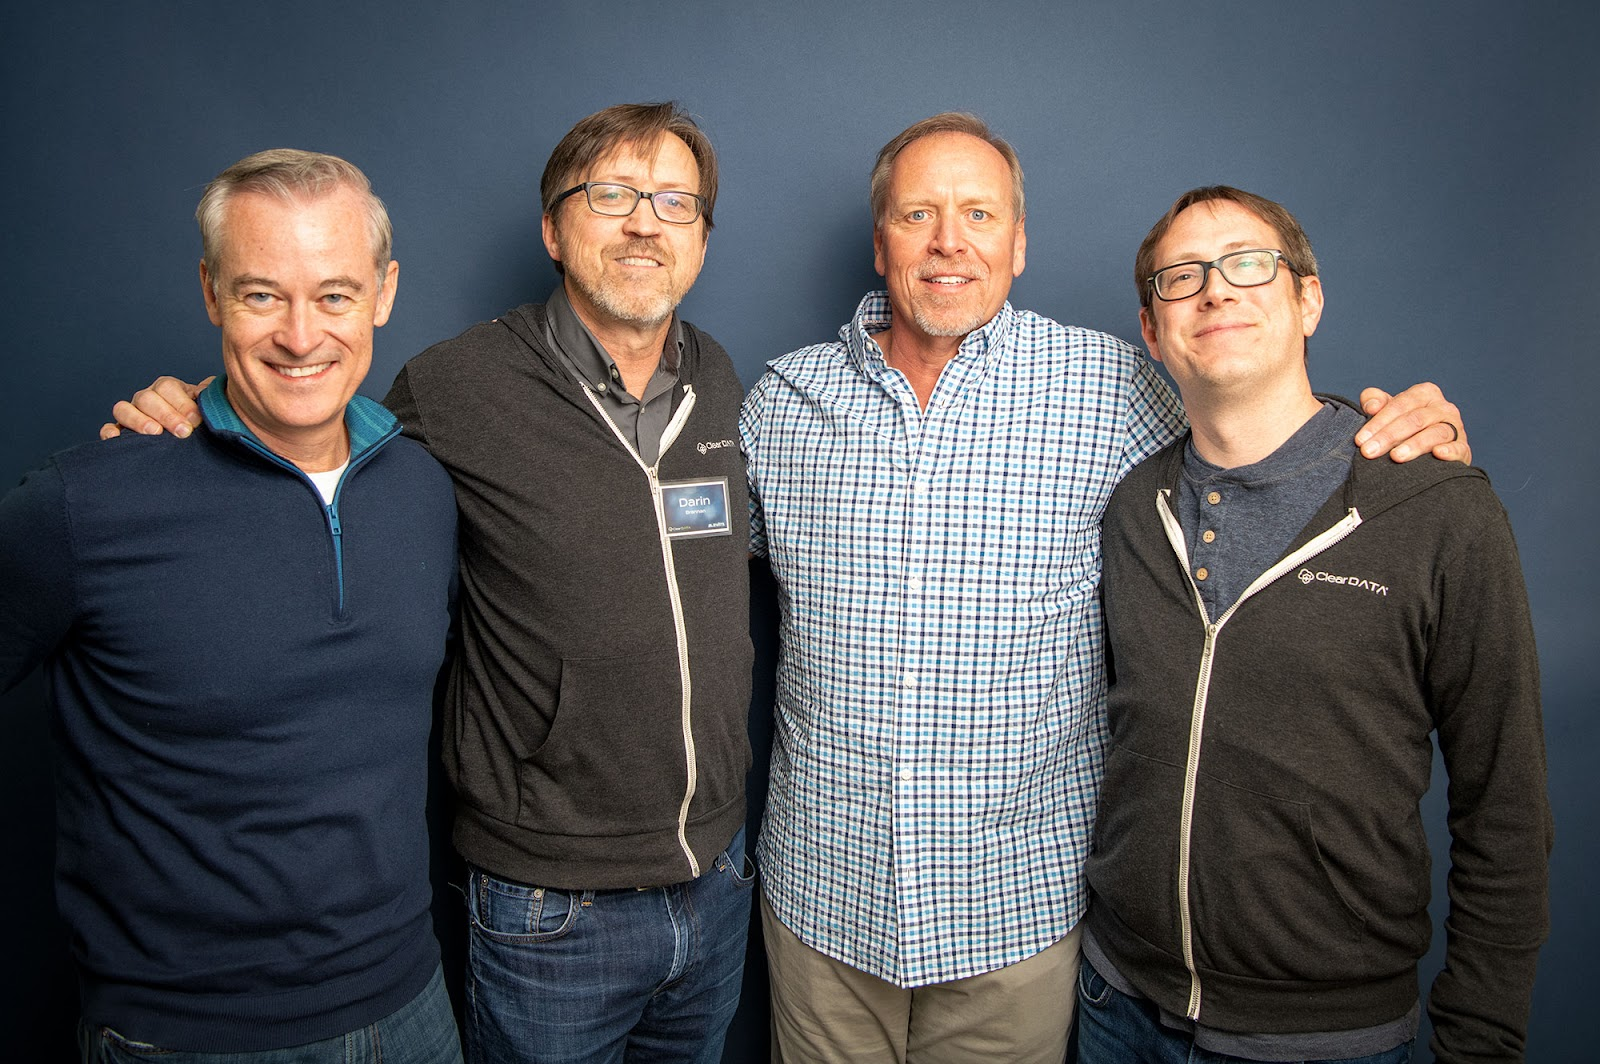 ClearDATA co-founders